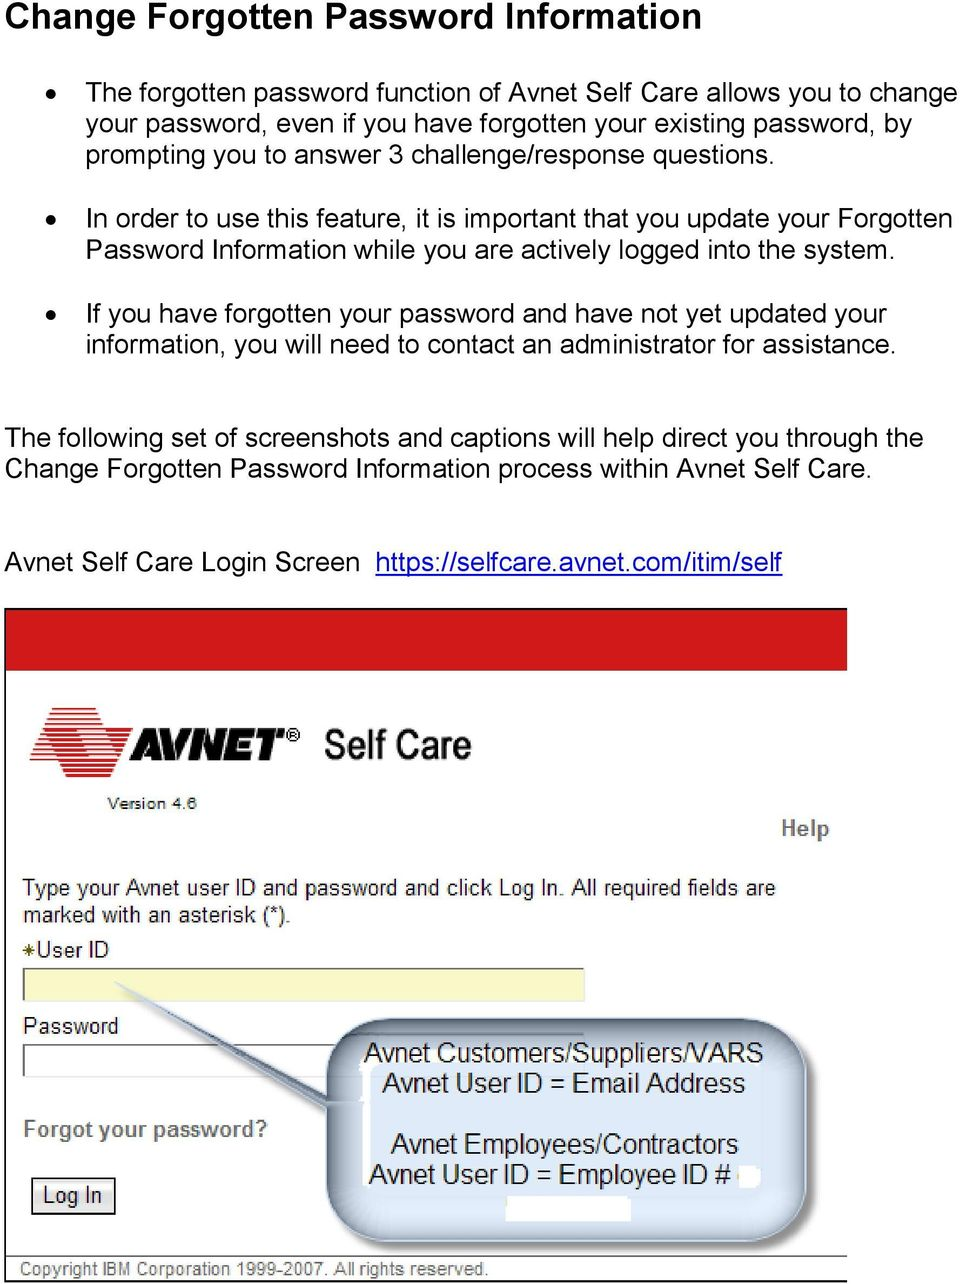 In order to use this feature, it is important that you update your Forgotten Password Information while you are actively logged into the system.